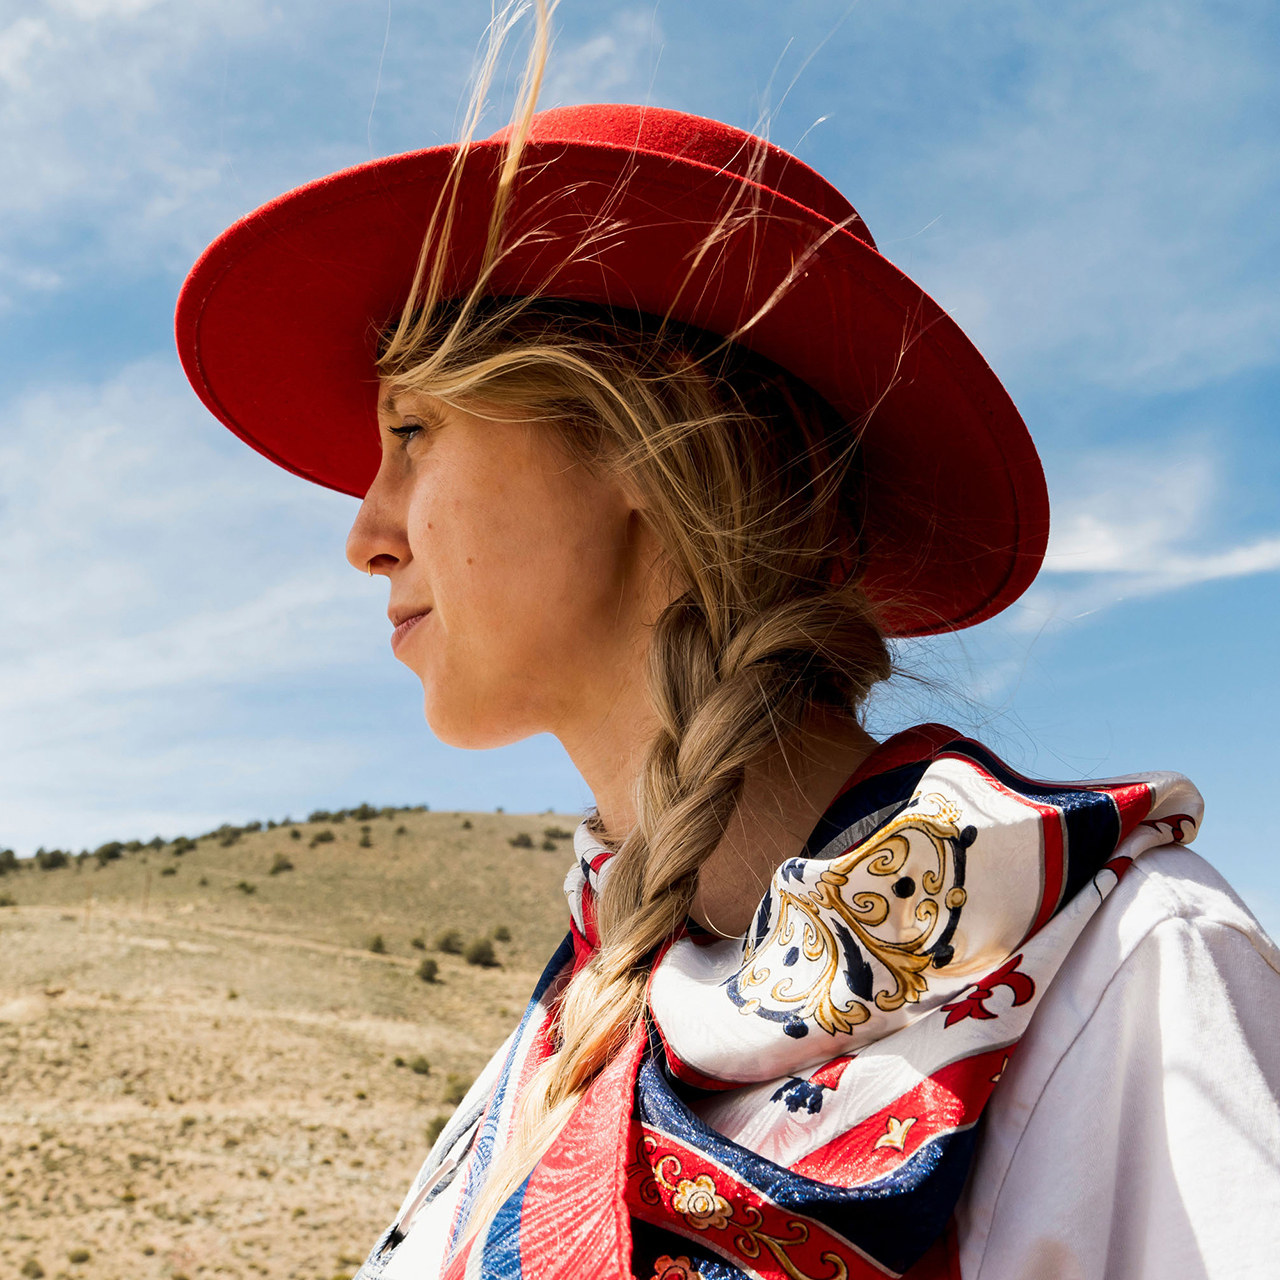 cowboy life in an old mining town in the American West